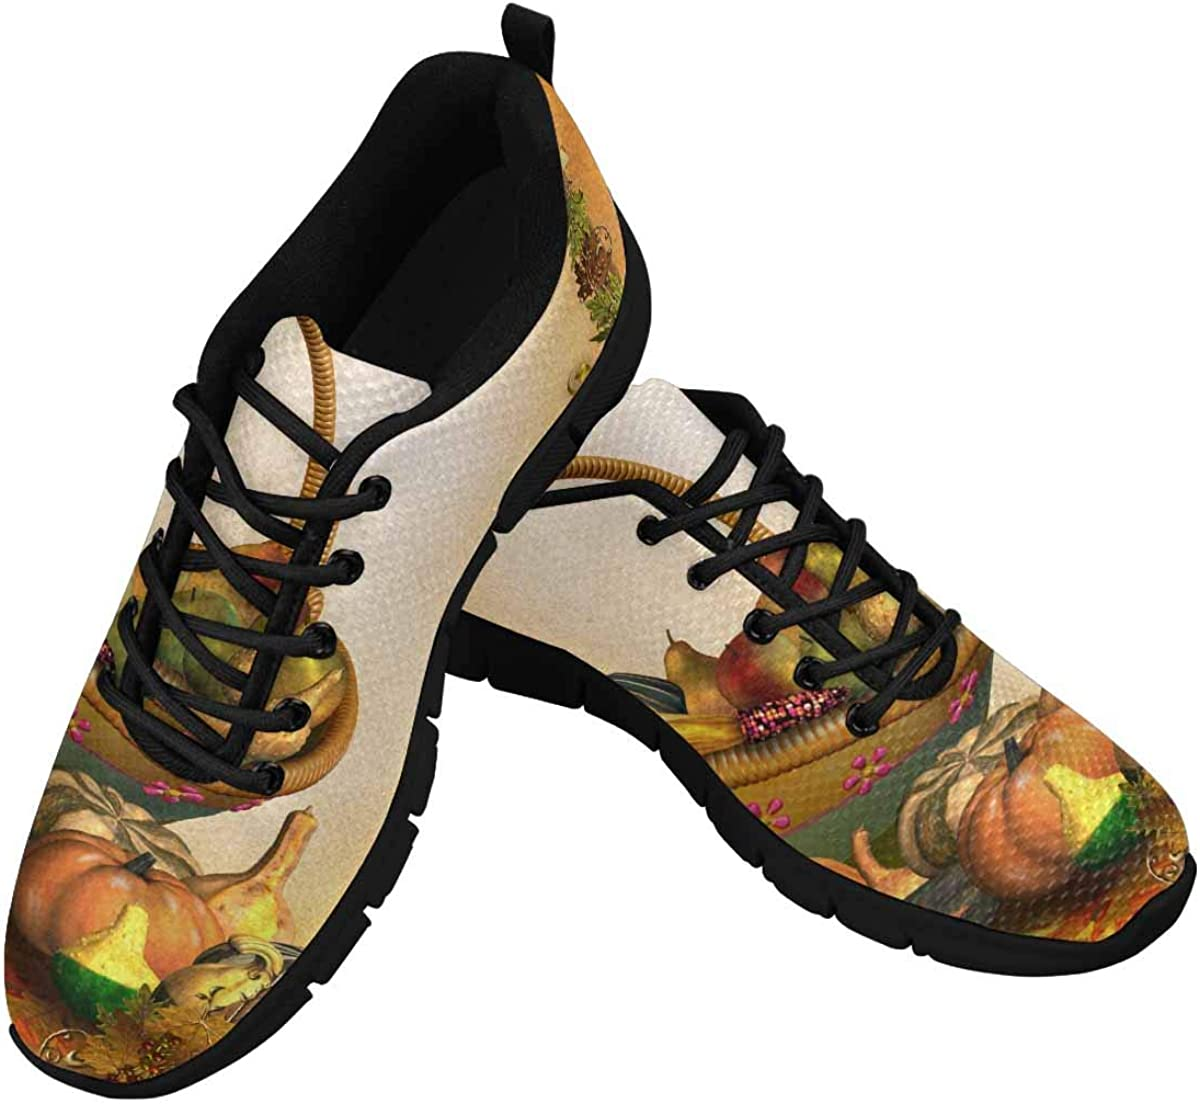 INTERESTPRINT Happy Thanksgiving Leaves Women's Athletic Walking Running Sneakers Comfortable Lightweight Shoes